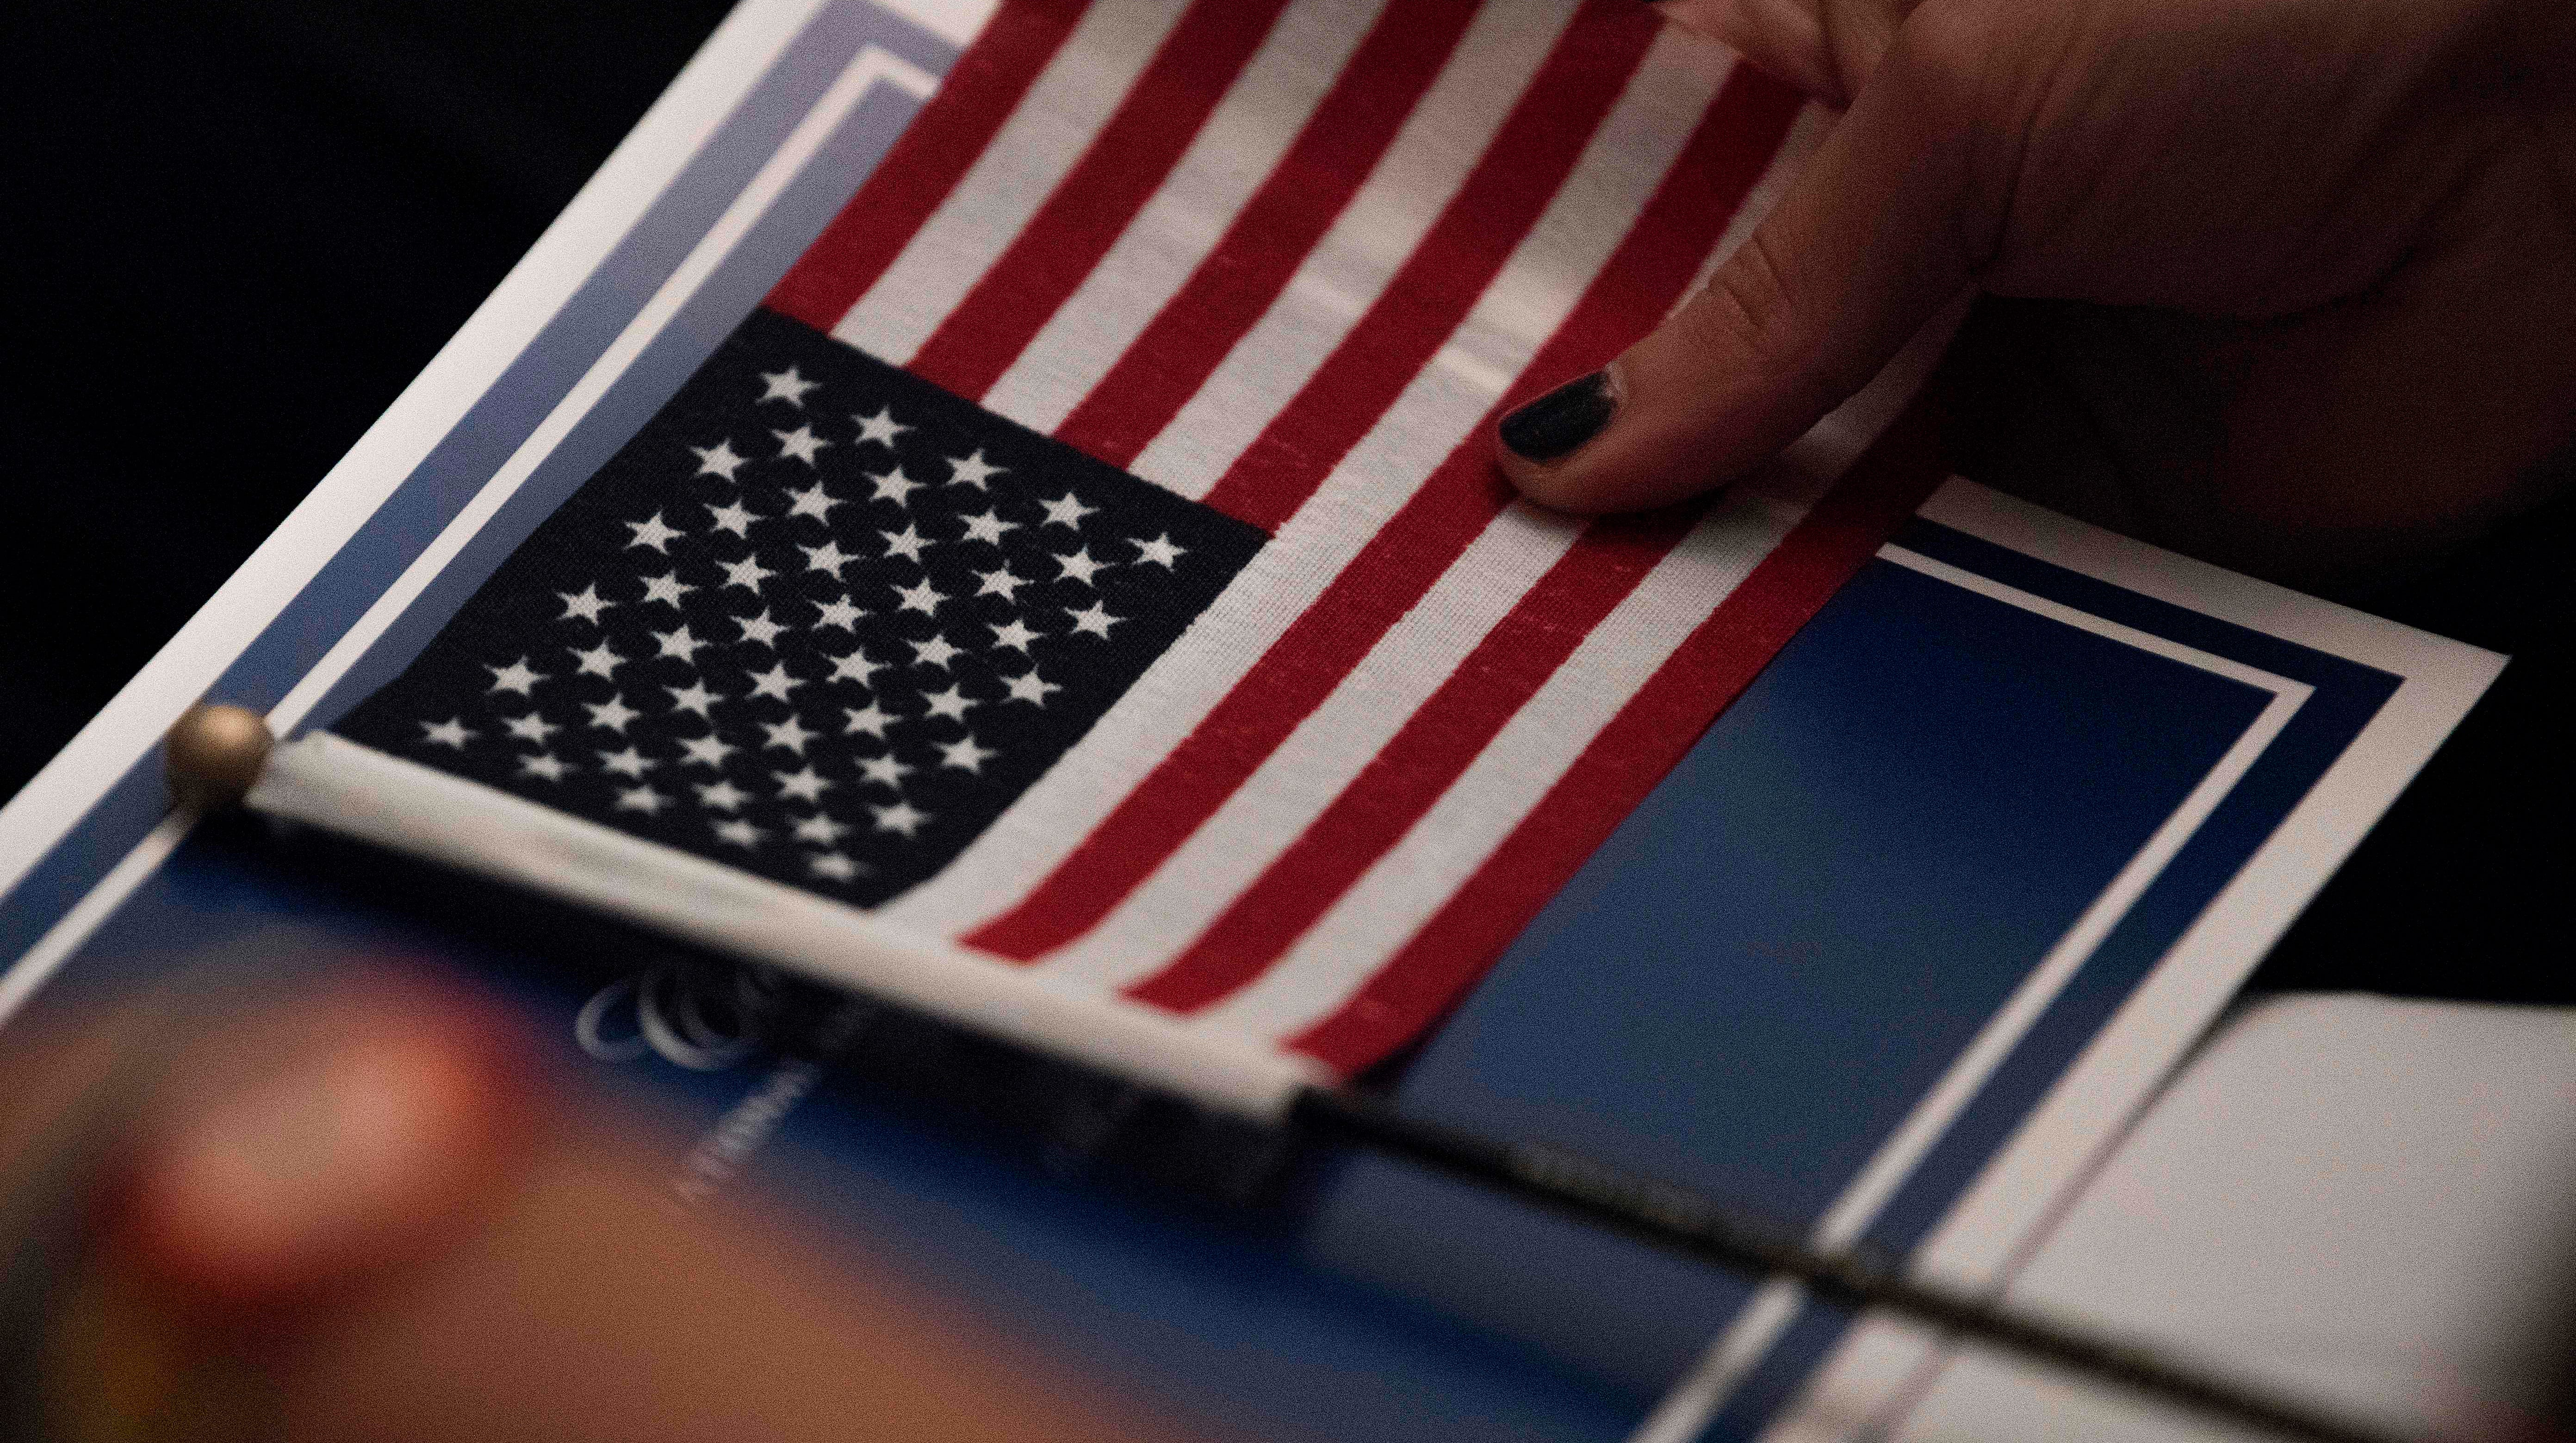 A woman holds an American flag during a naturalization ceremony at the National Archives in Washington, D.C.